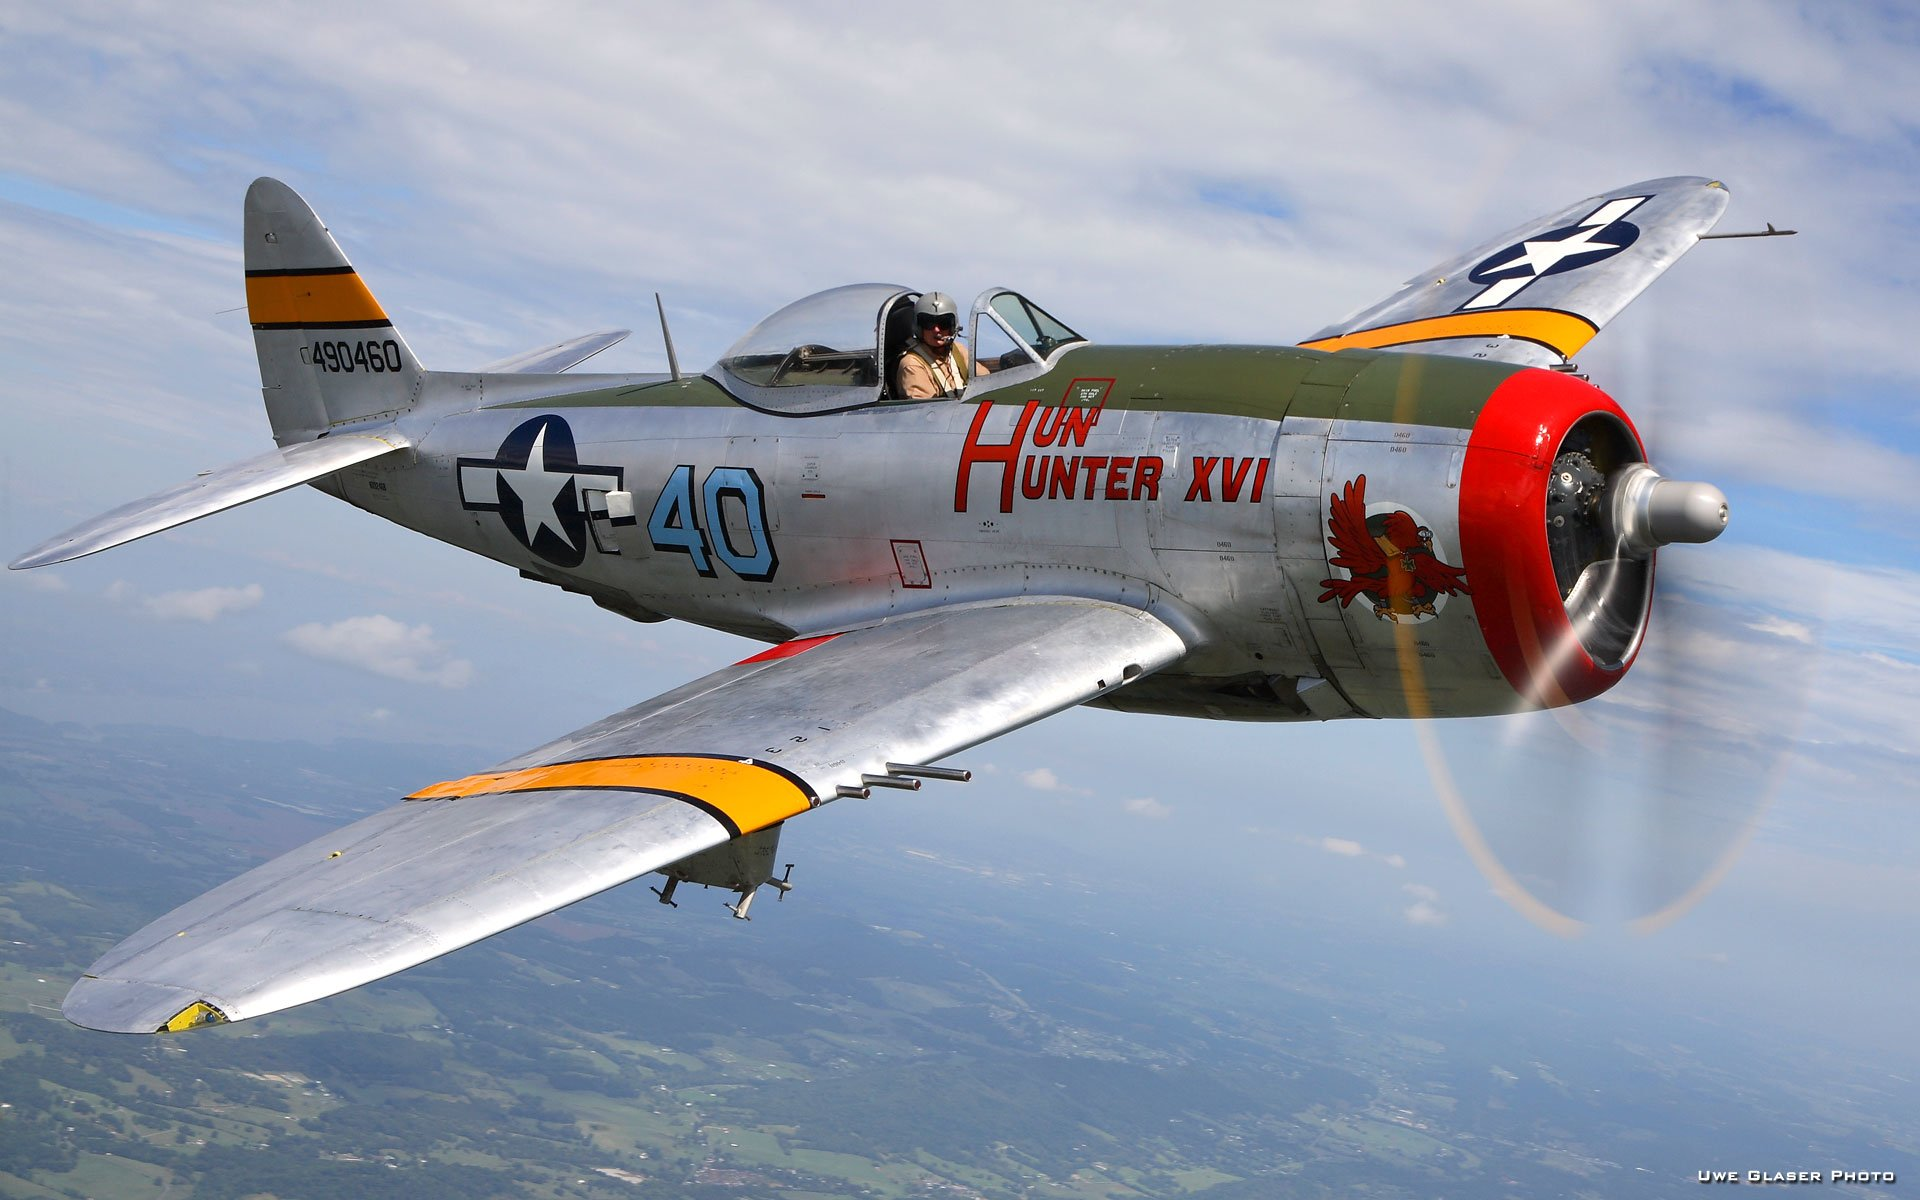 P 47 Thunderbolt Wallpaper Republic P-47 Thunderb...